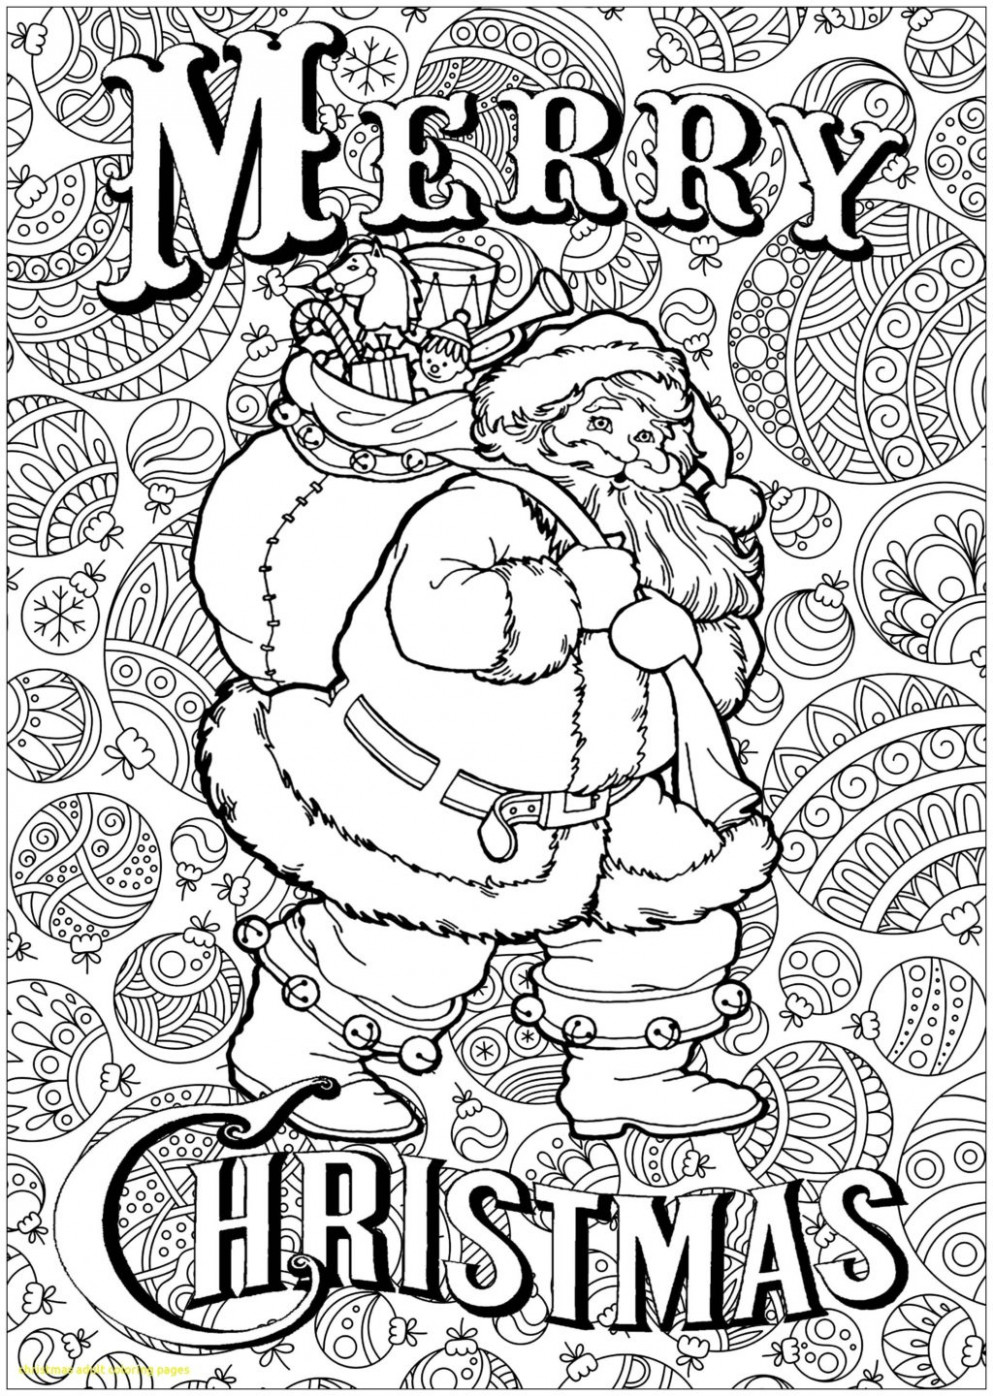 Coloring Book World ~ Charlie Brown Christmas Coloring Pages Pdf ..